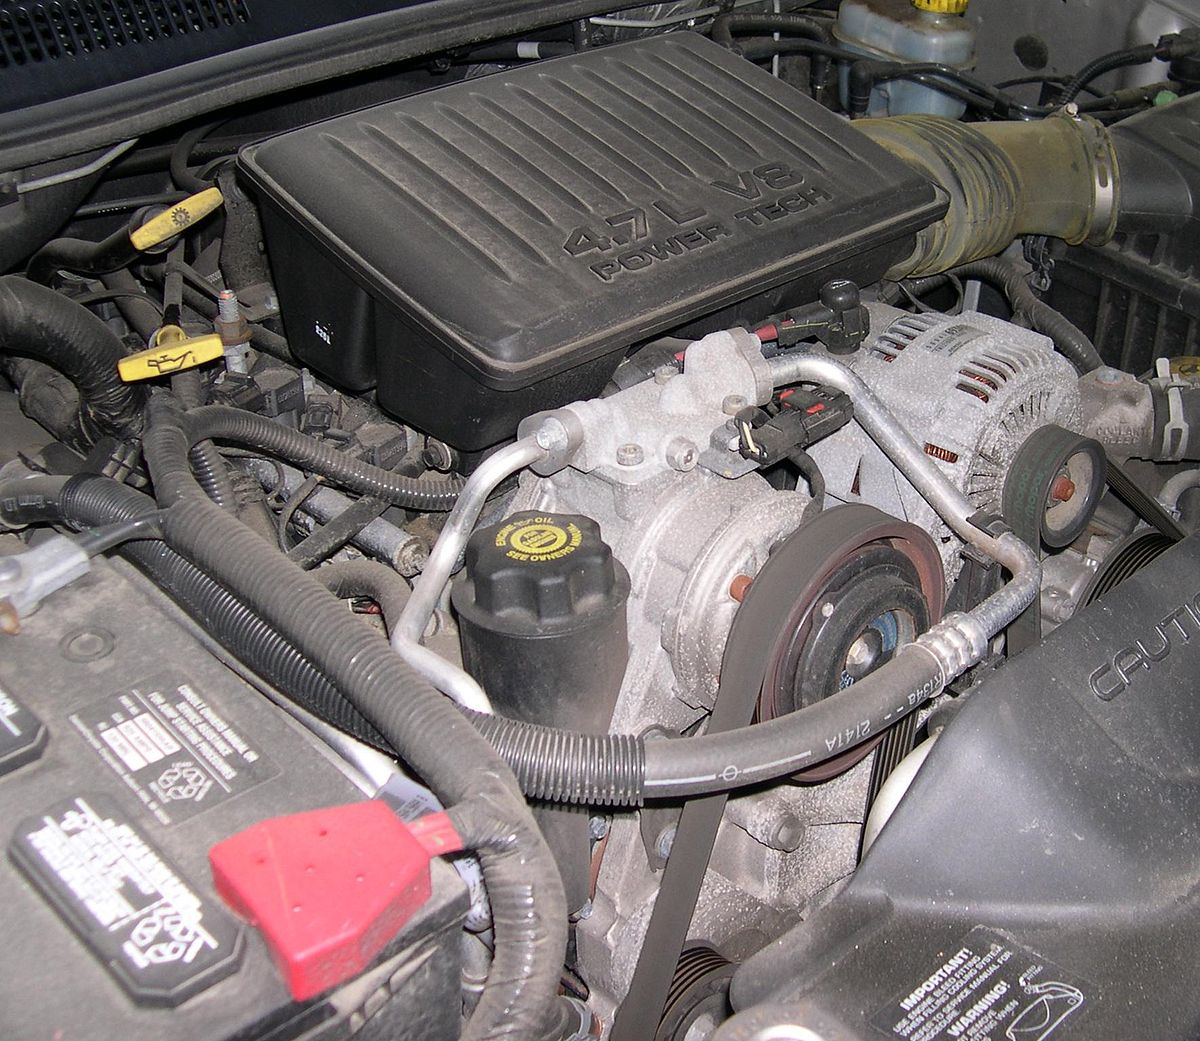 hight resolution of chrysler powertech engine wikipedia 2000 chrysler 3 8 engine diagram